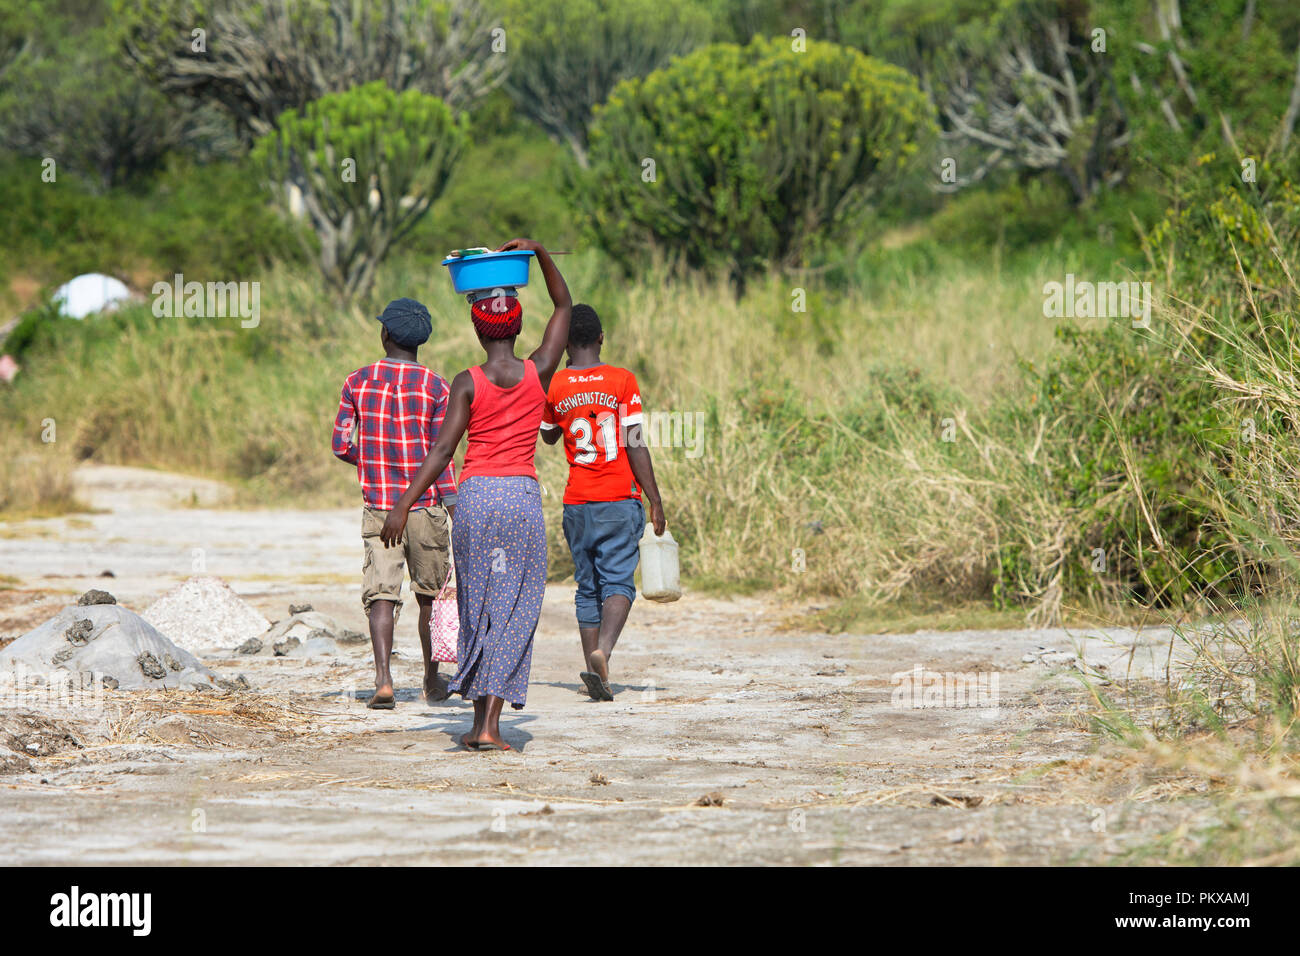 African Woman Walking Carrying Basin on Head and Two Young Men Walking, Africa Woman Carries Load on top of her Head, Uganda - Stock Image